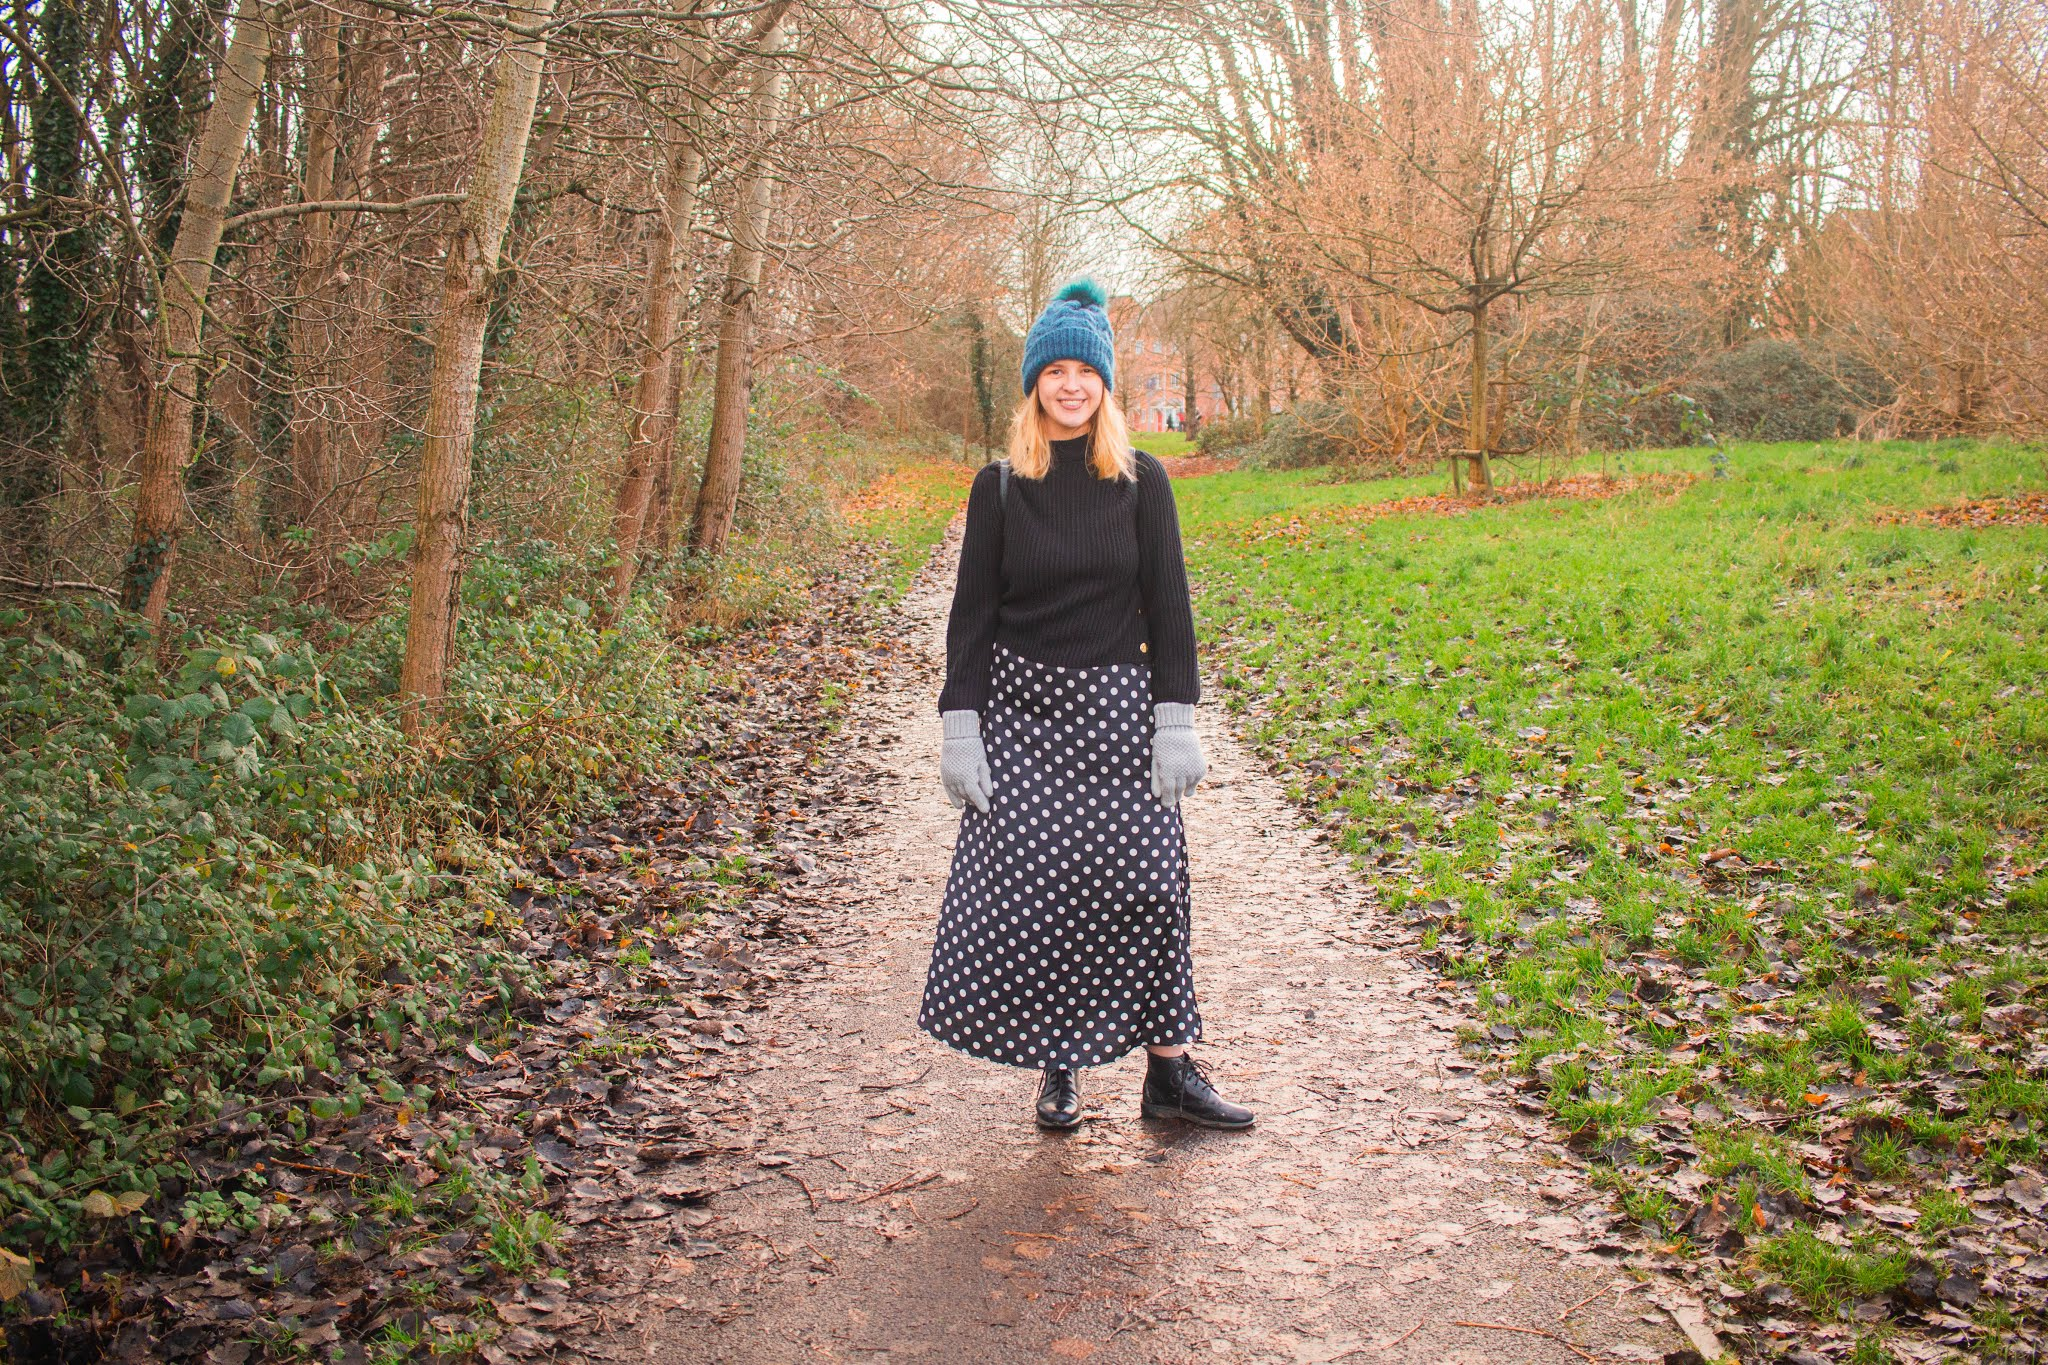 fashion blogger chloeharriets wearing polka dress, jumper and hat, walking through nature, smiling, how to relieve stress blog self-care intentional living